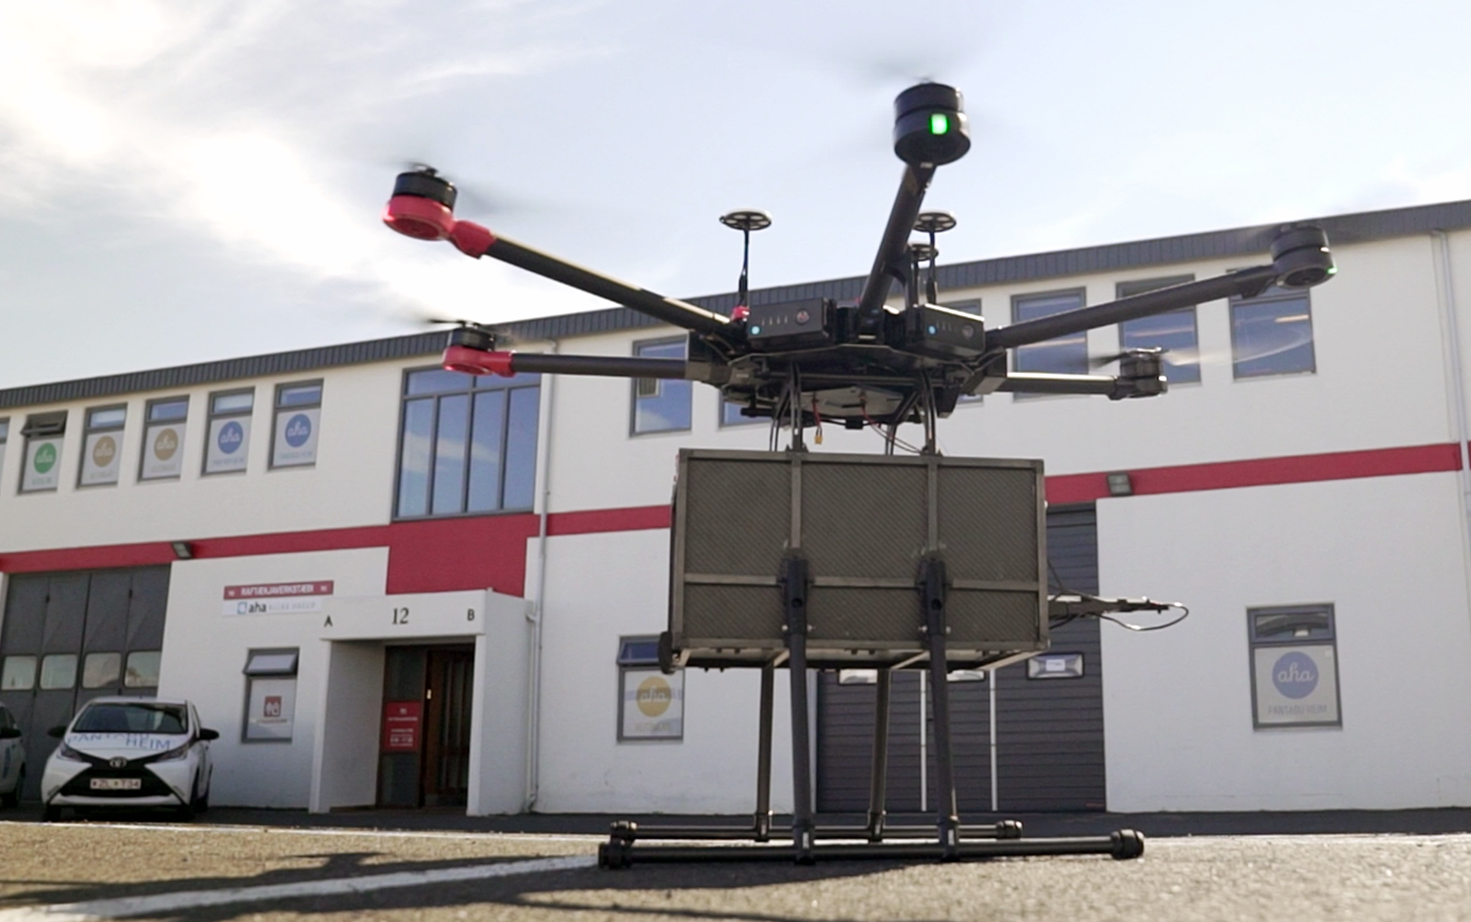 Flying food comes to Iceland with a fully operational drone delivery system